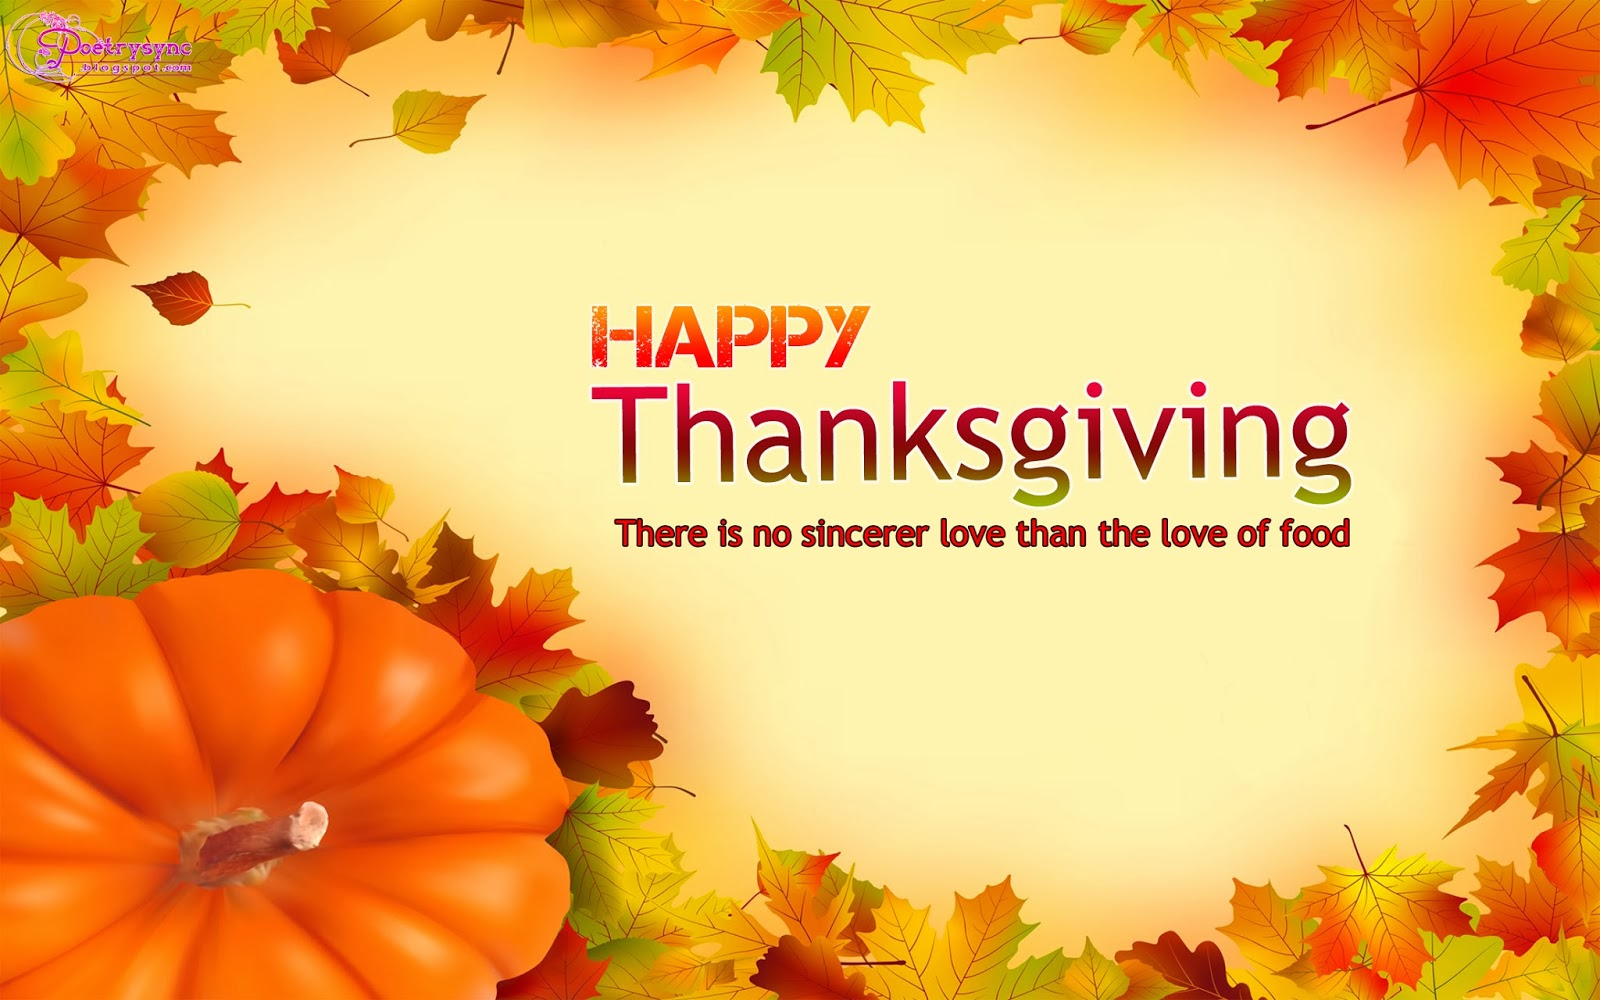 Thanksgiving Day Wishes, Quotes, Sayings, Messages, SMS, Greetings Cards  Pictures; U201c